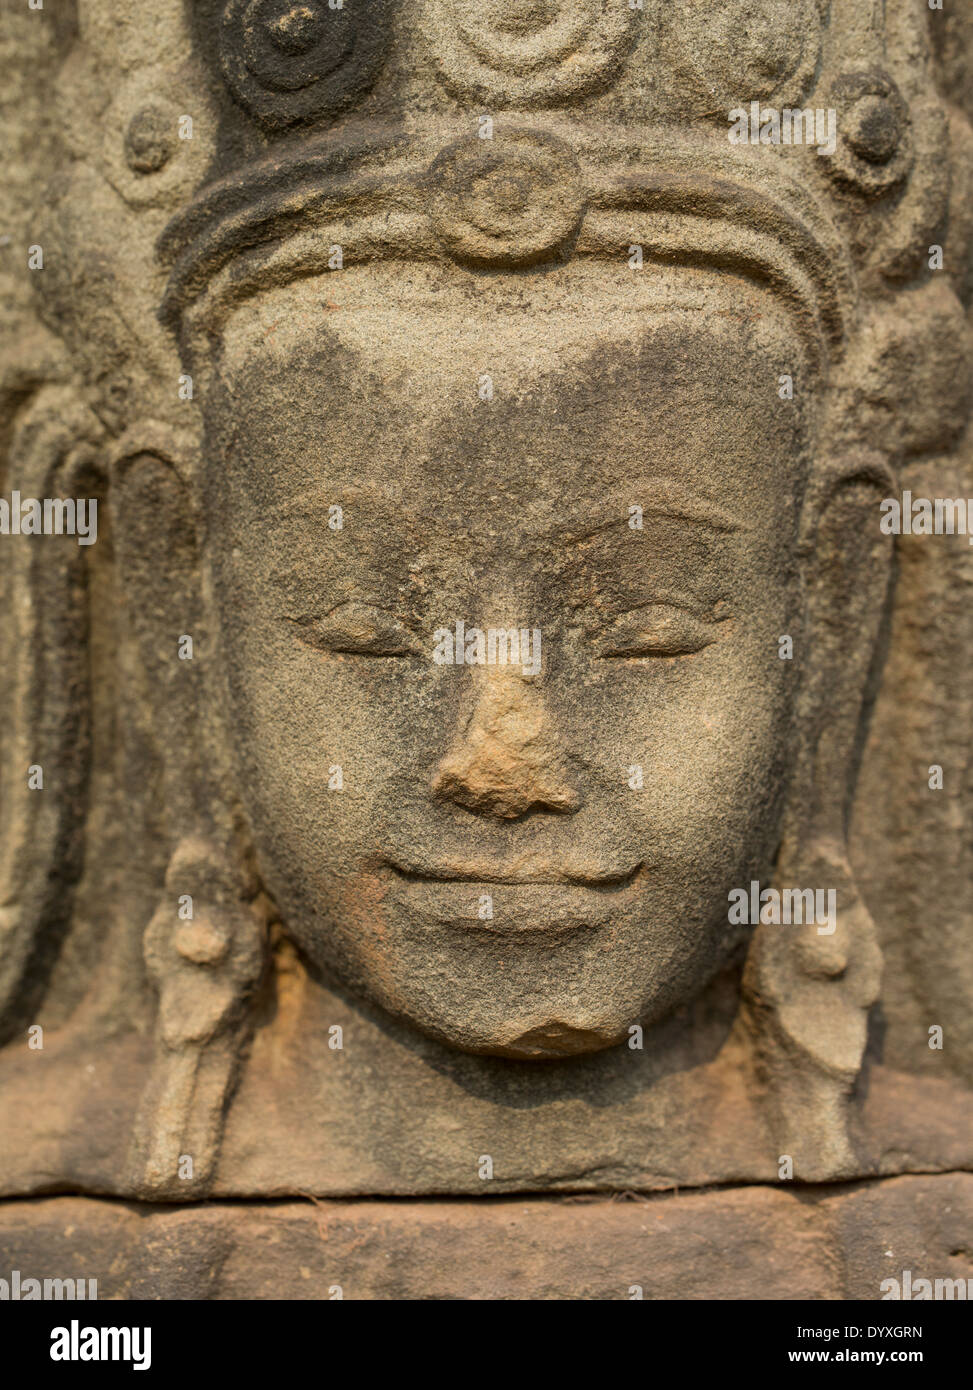 Stone carving of an Apsara face beside the Terrace of Elephants, Angkor Thom Temple, Siem Reap, Cambodia - Stock Image